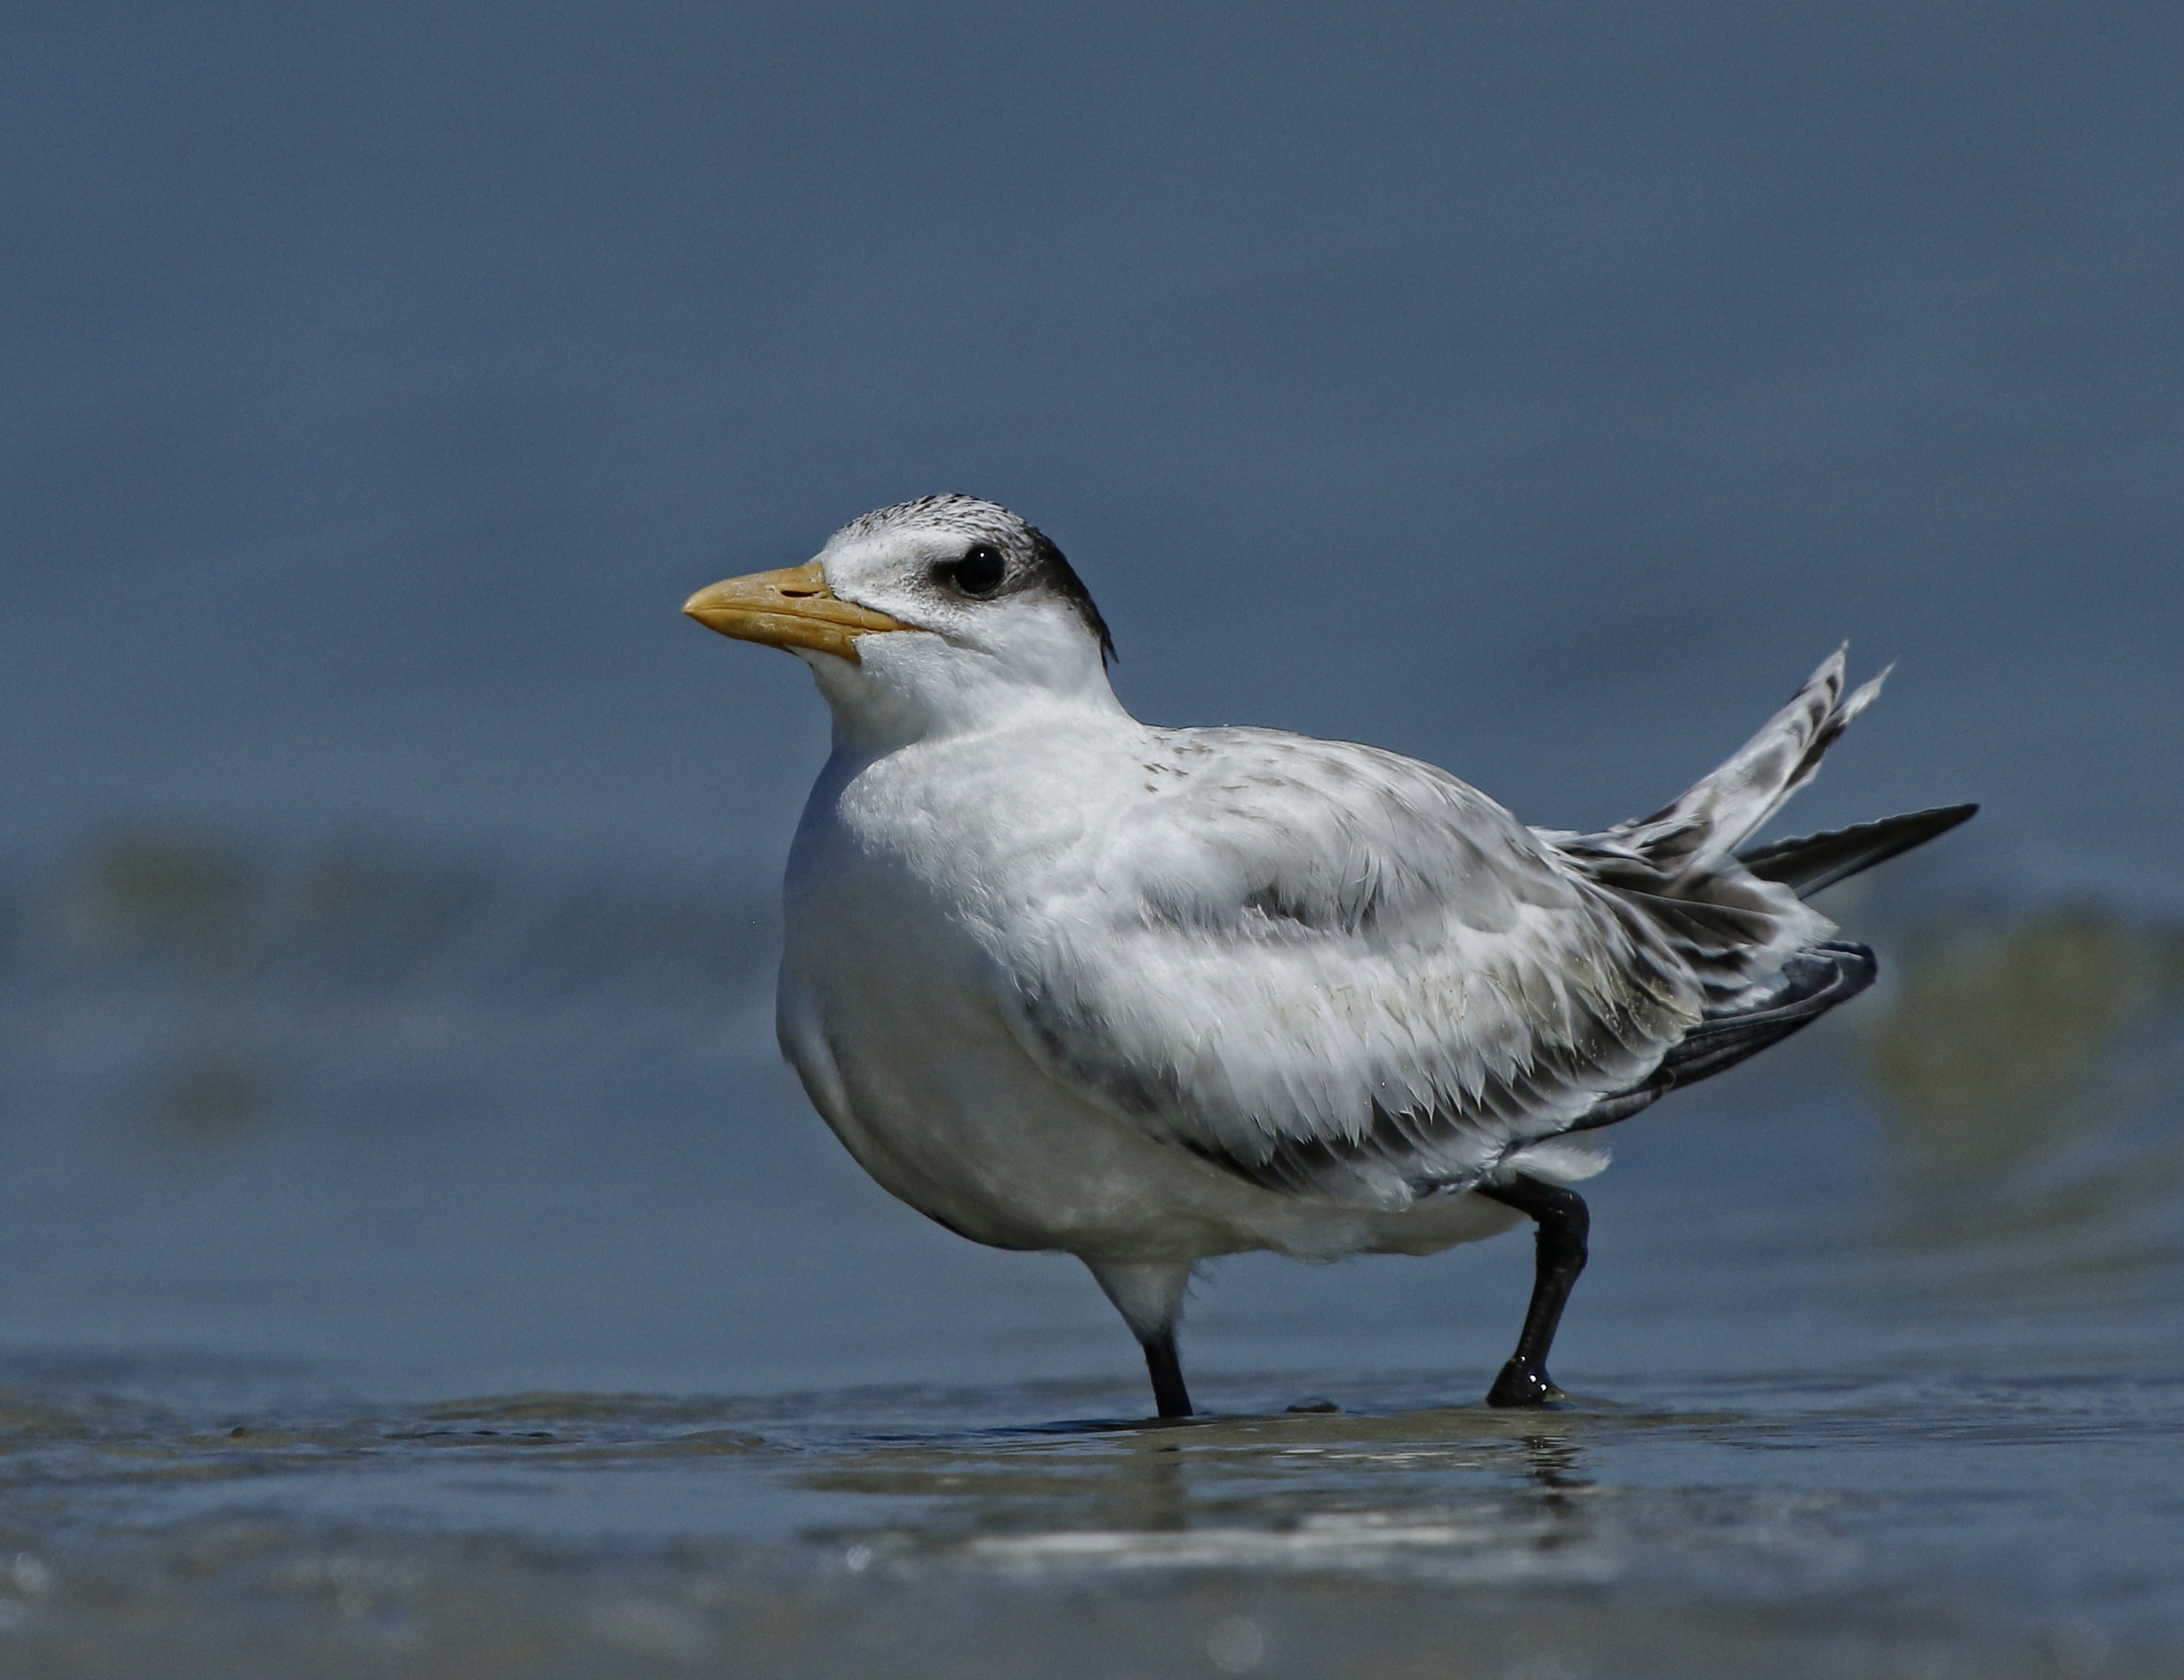 Fledgling Royal Tern waiting for fish in the surf